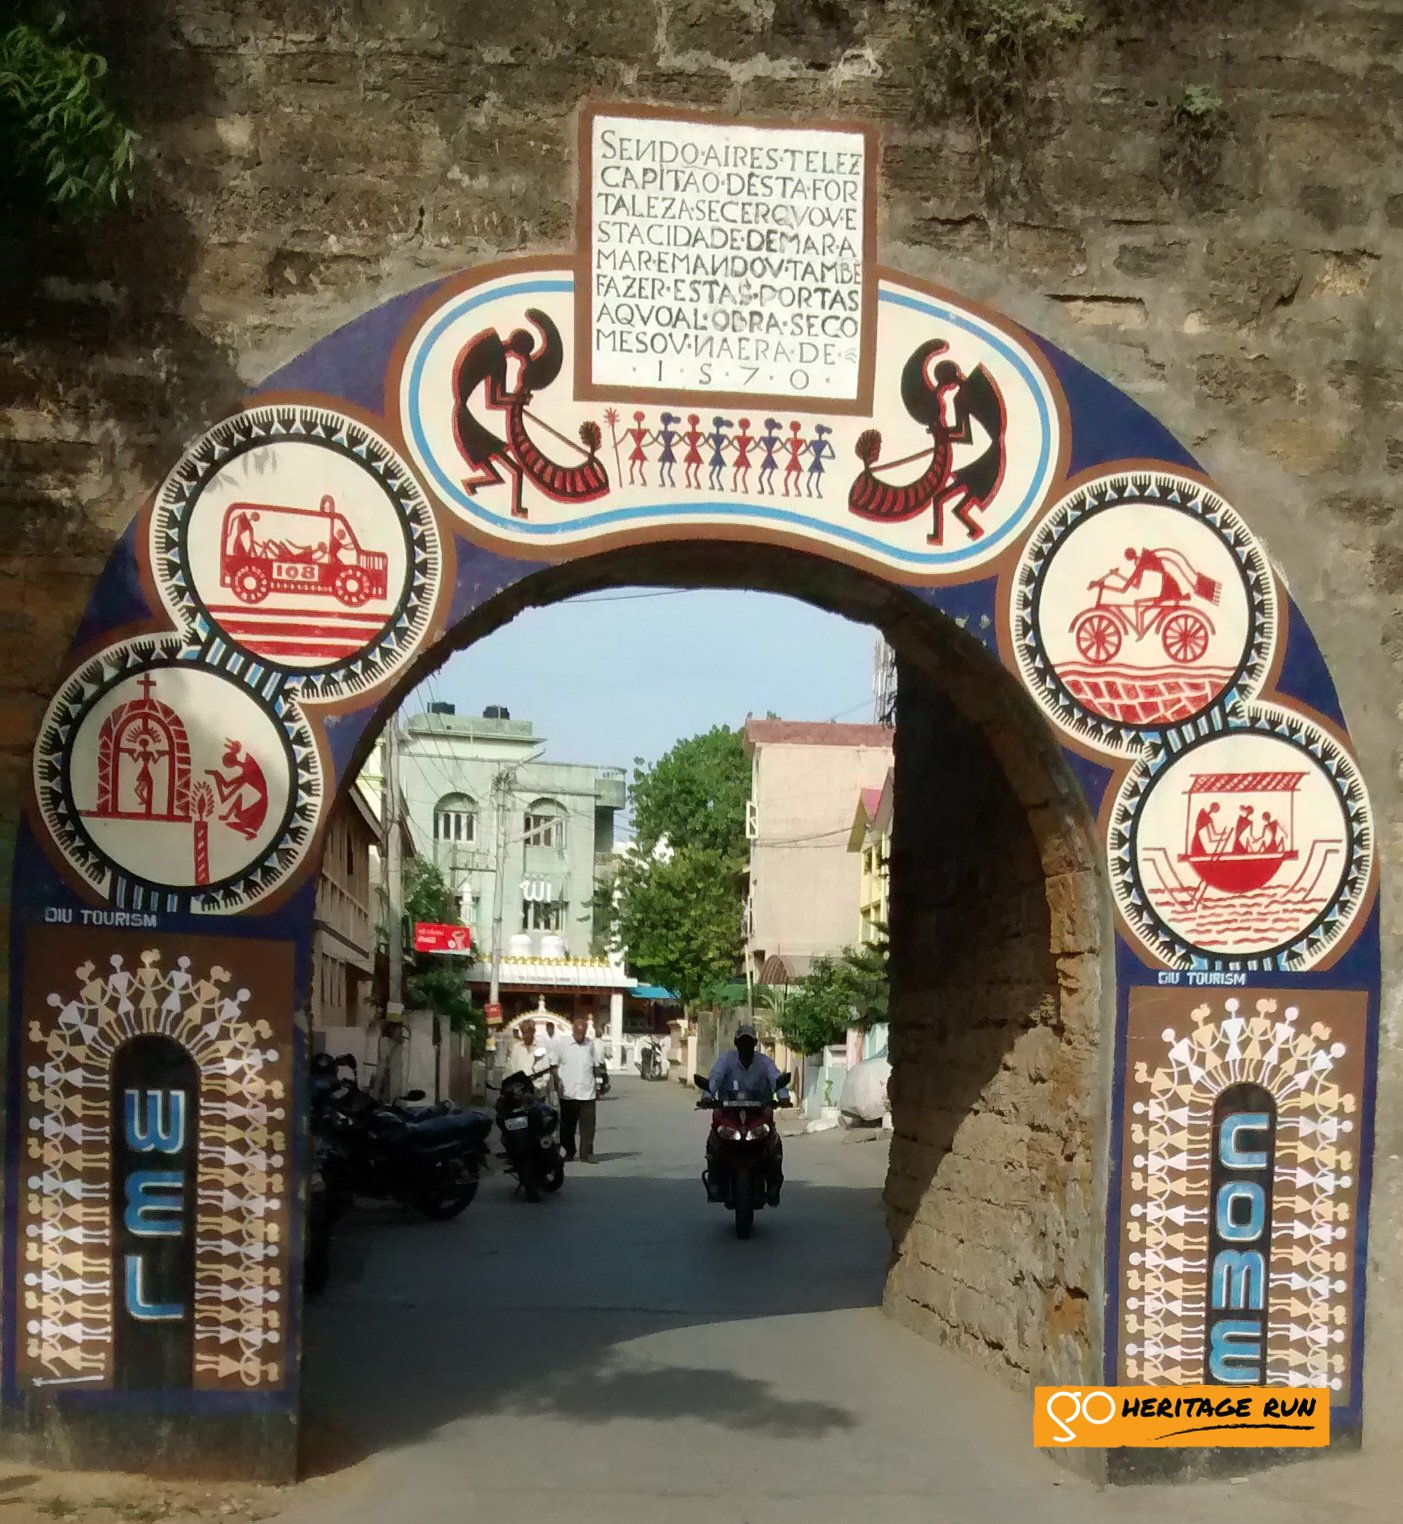 Another decorated arch